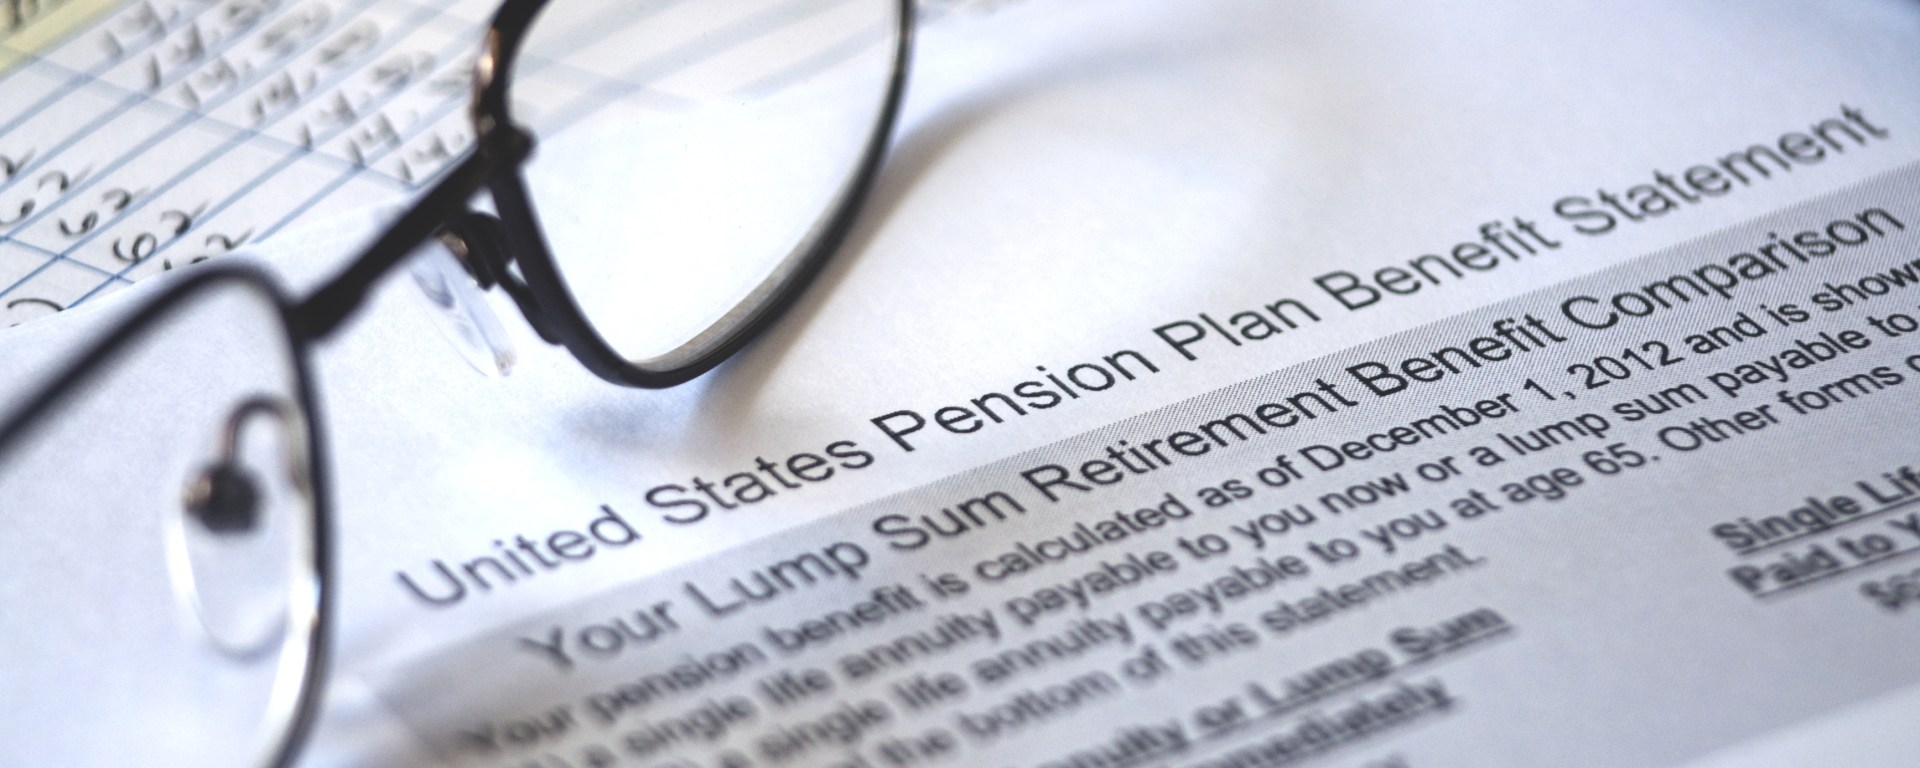 United States Pension Plan Benefit Statement